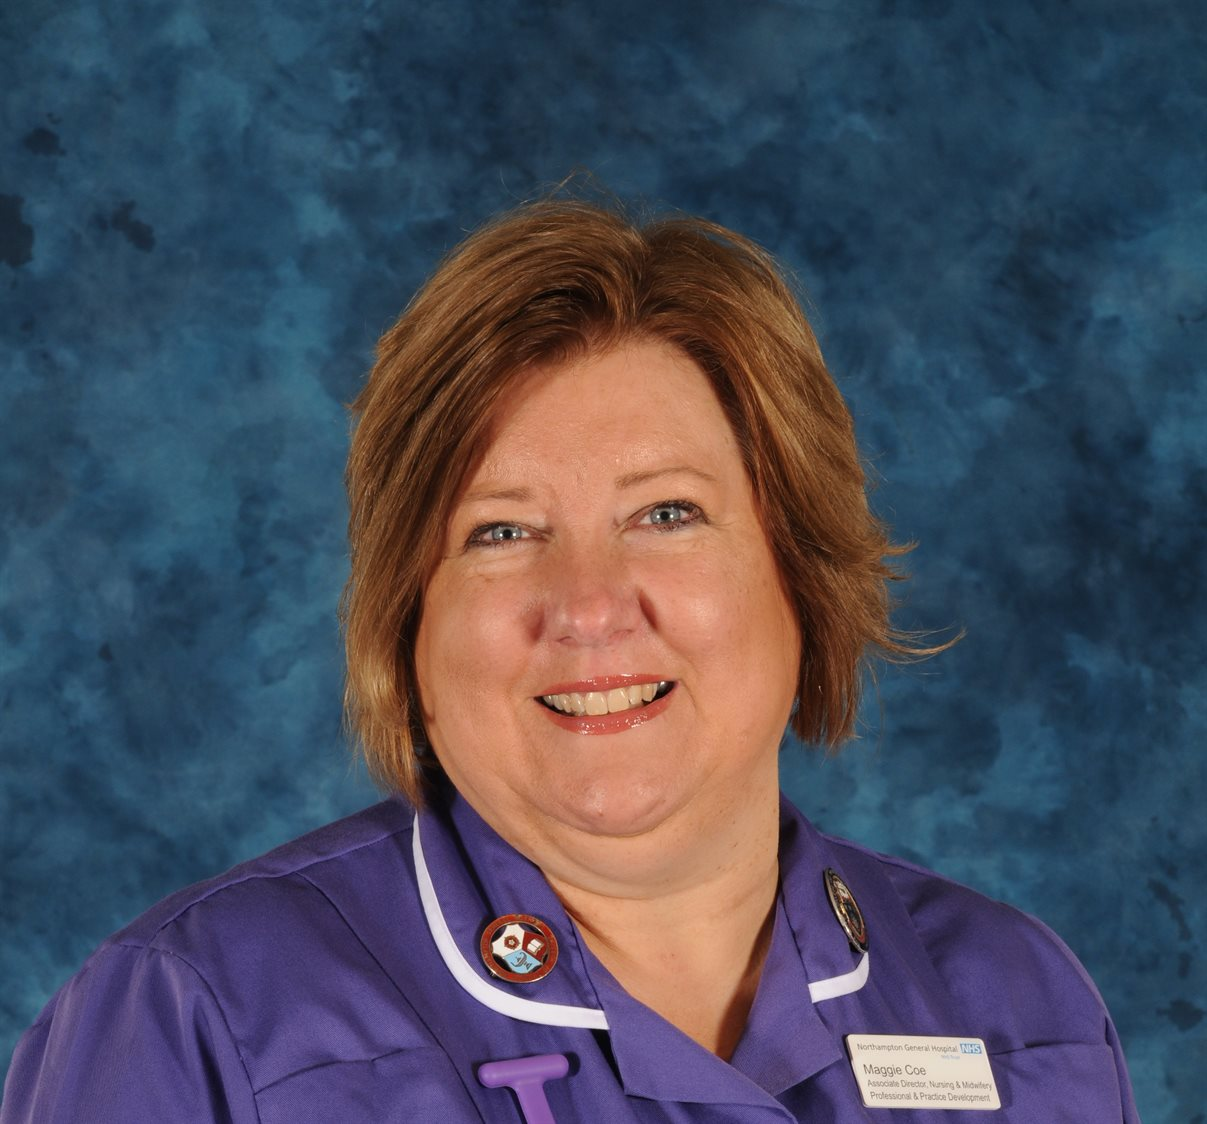 Maggie Coe_ - Associate Director of Nursing rotated 2